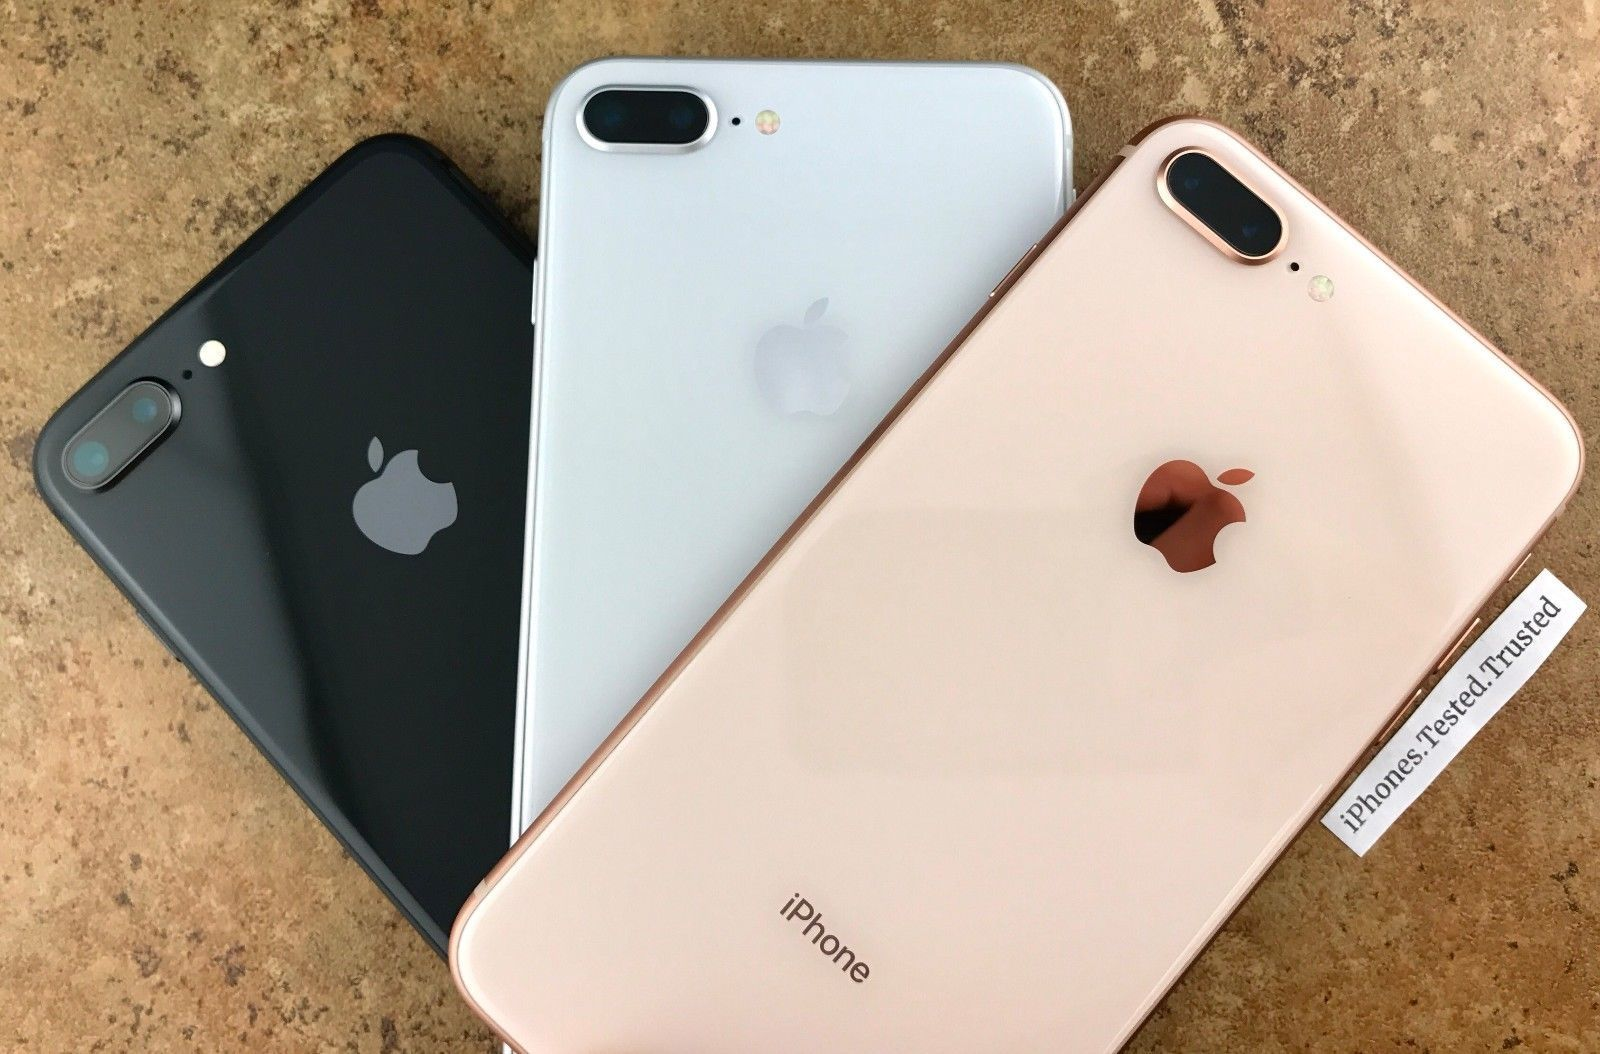 599 00 Apple Iphone 8 Plus 64gb 256gb Space Gray Silver Gold Unlocked At T Verizon Apple Iphone Plus 64gb 25 Iphone Apple Iphone Iphone 8 Plus